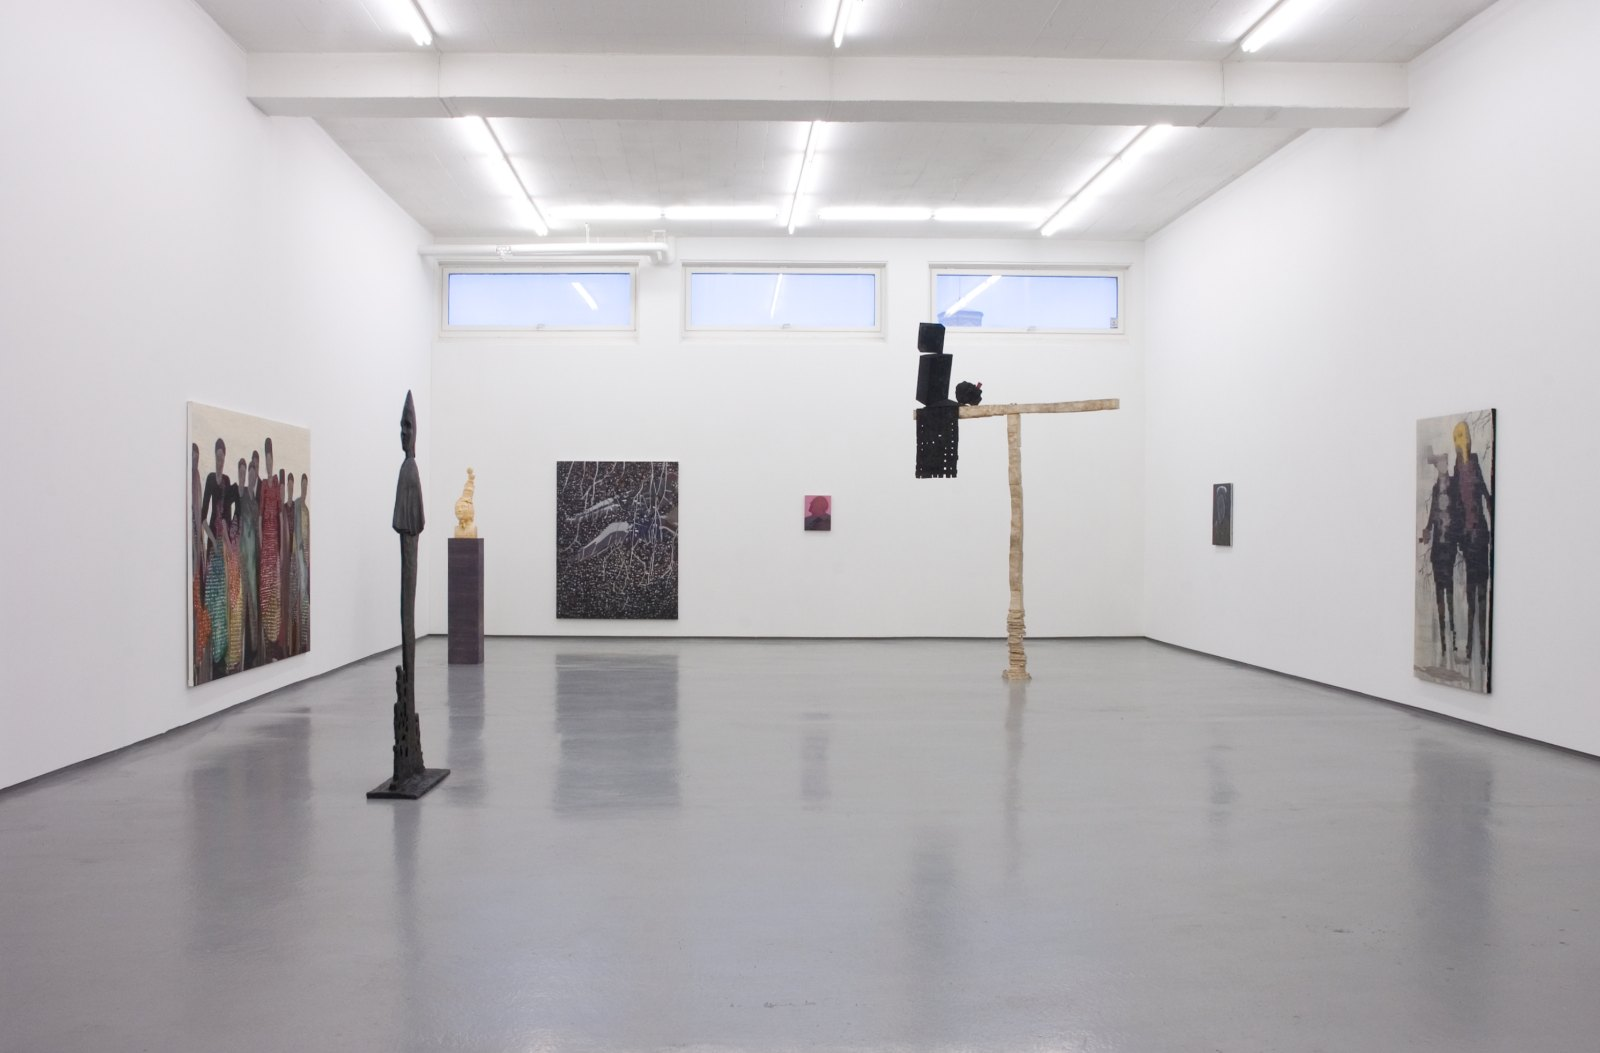 Installation view, Håvard Homstvedt, You will hardly know, Galleri Riis, Oslo, 2007